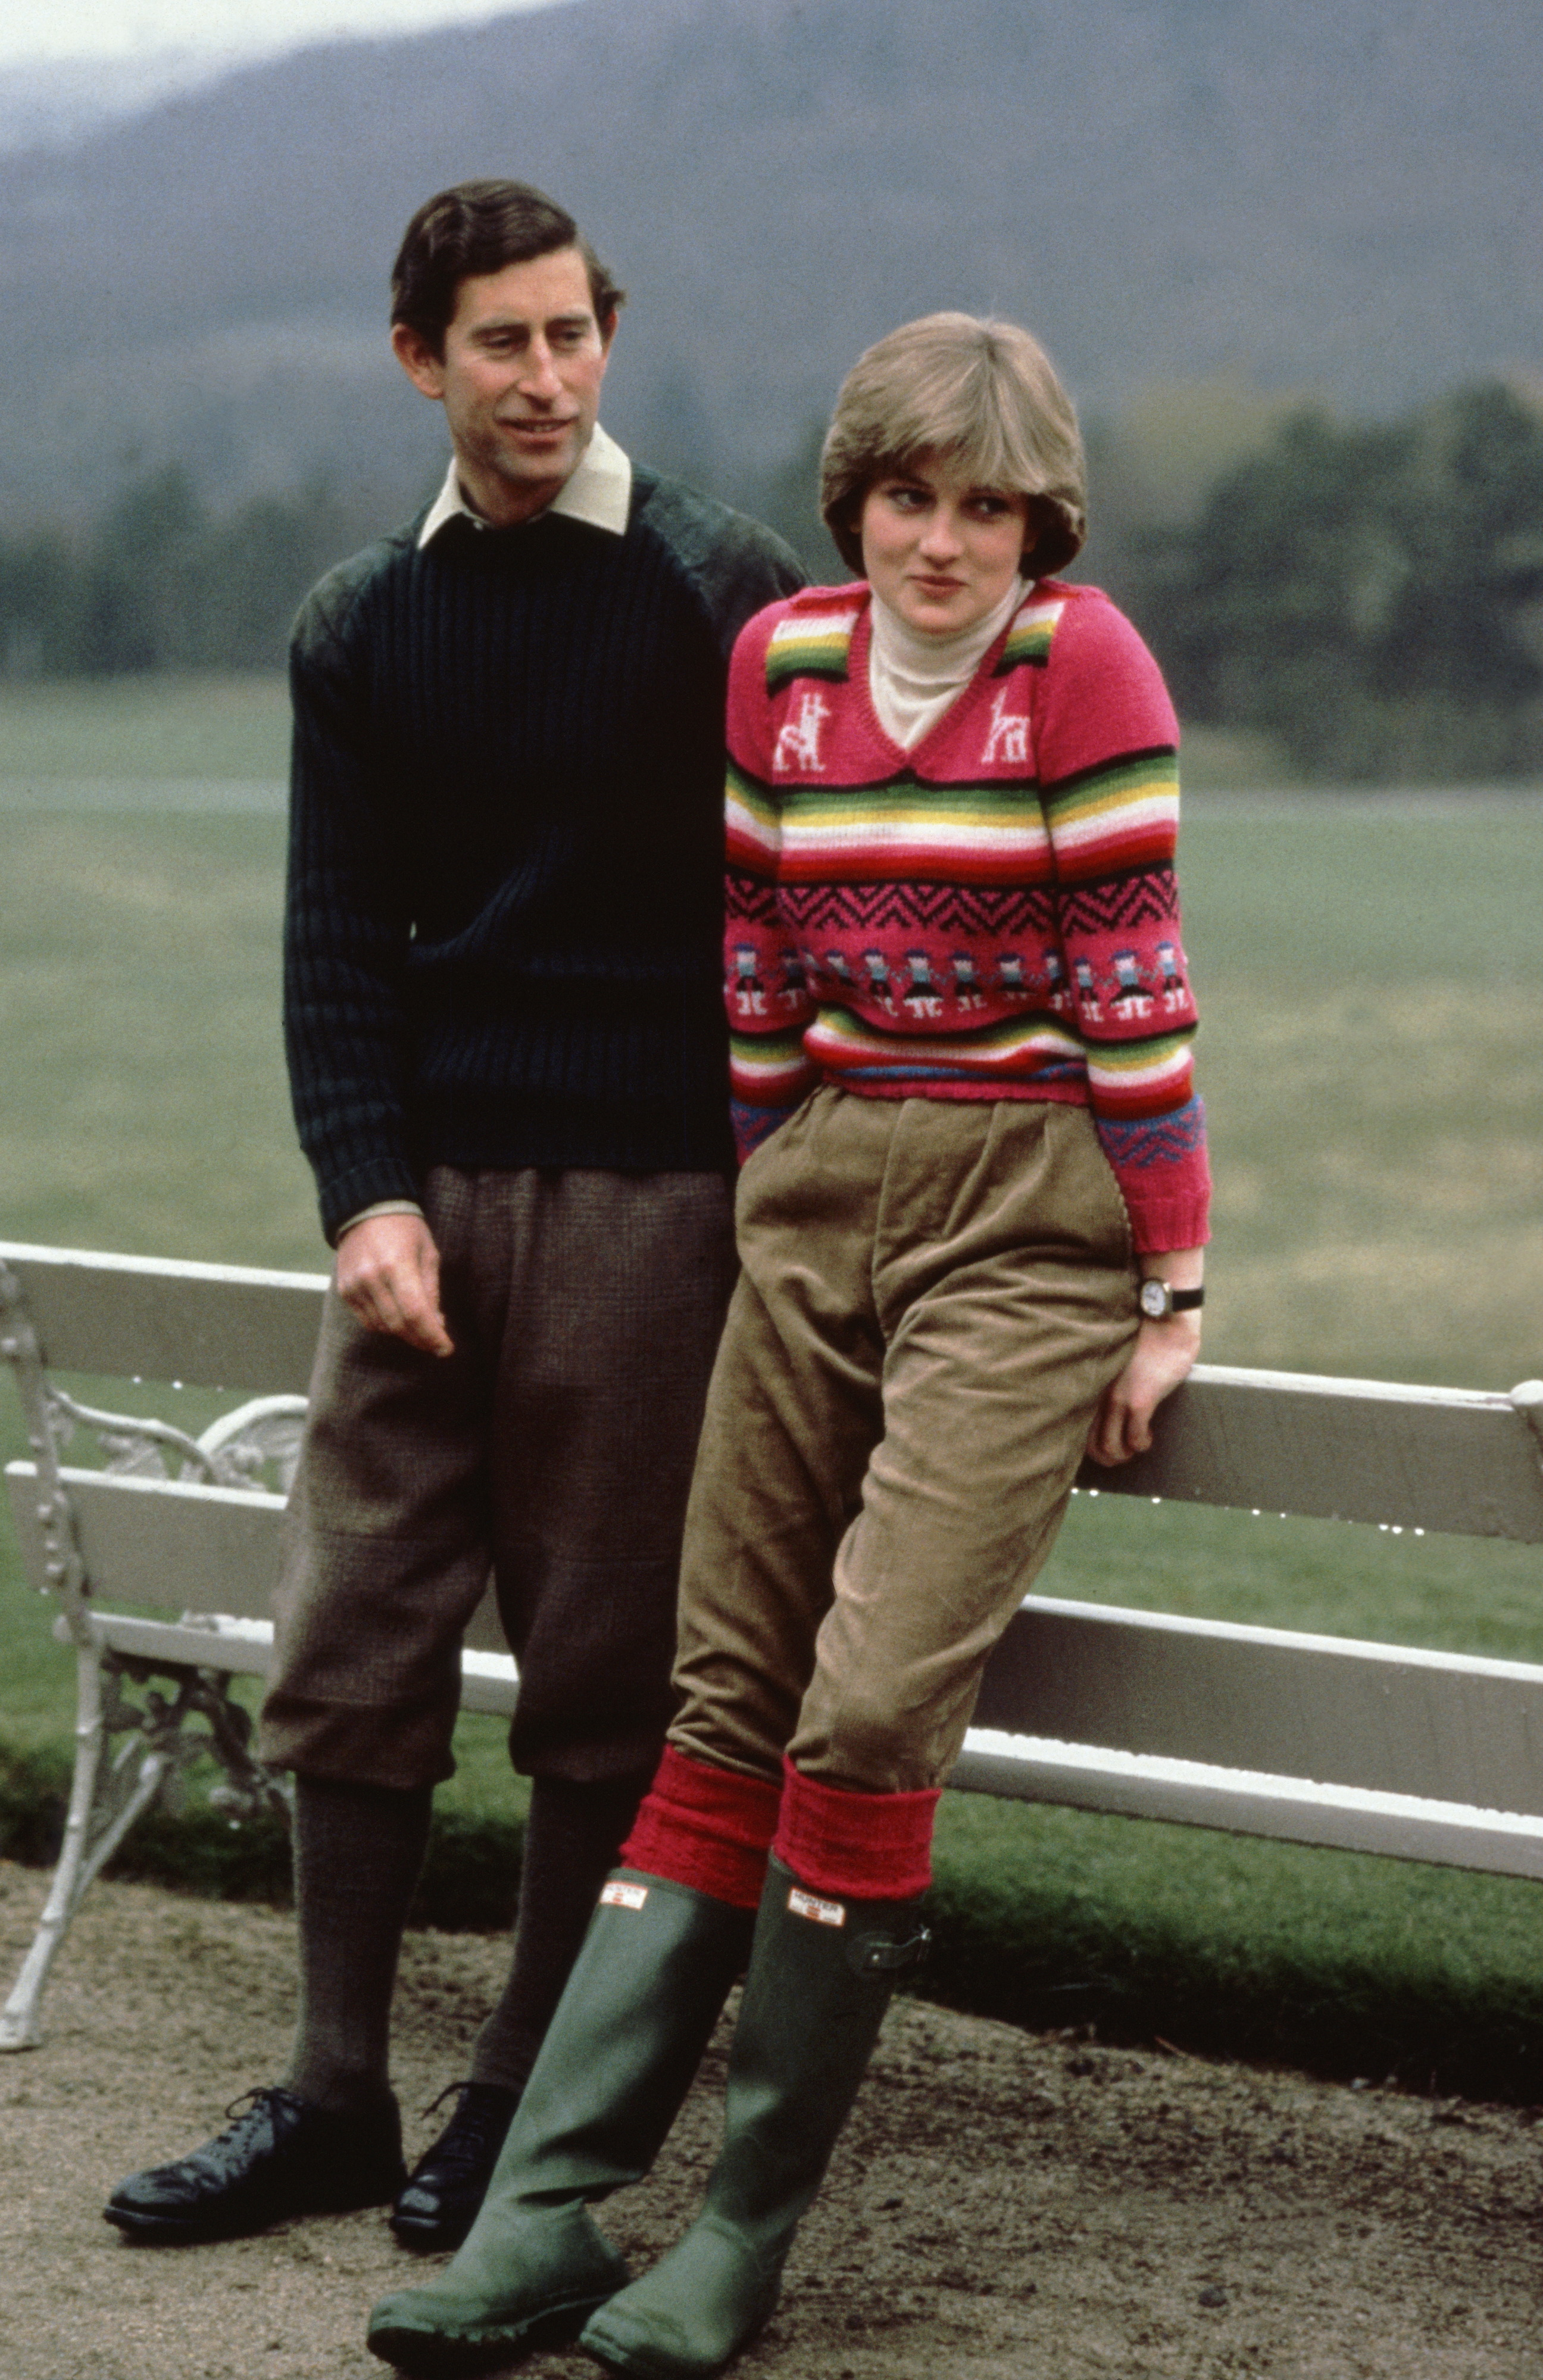 Ahead of her wedding, Diana went casual with a cozy sweater and a pair of classic Wellie boots while at the British royal family's holiday home, Balmoral Castle, in Scotland.